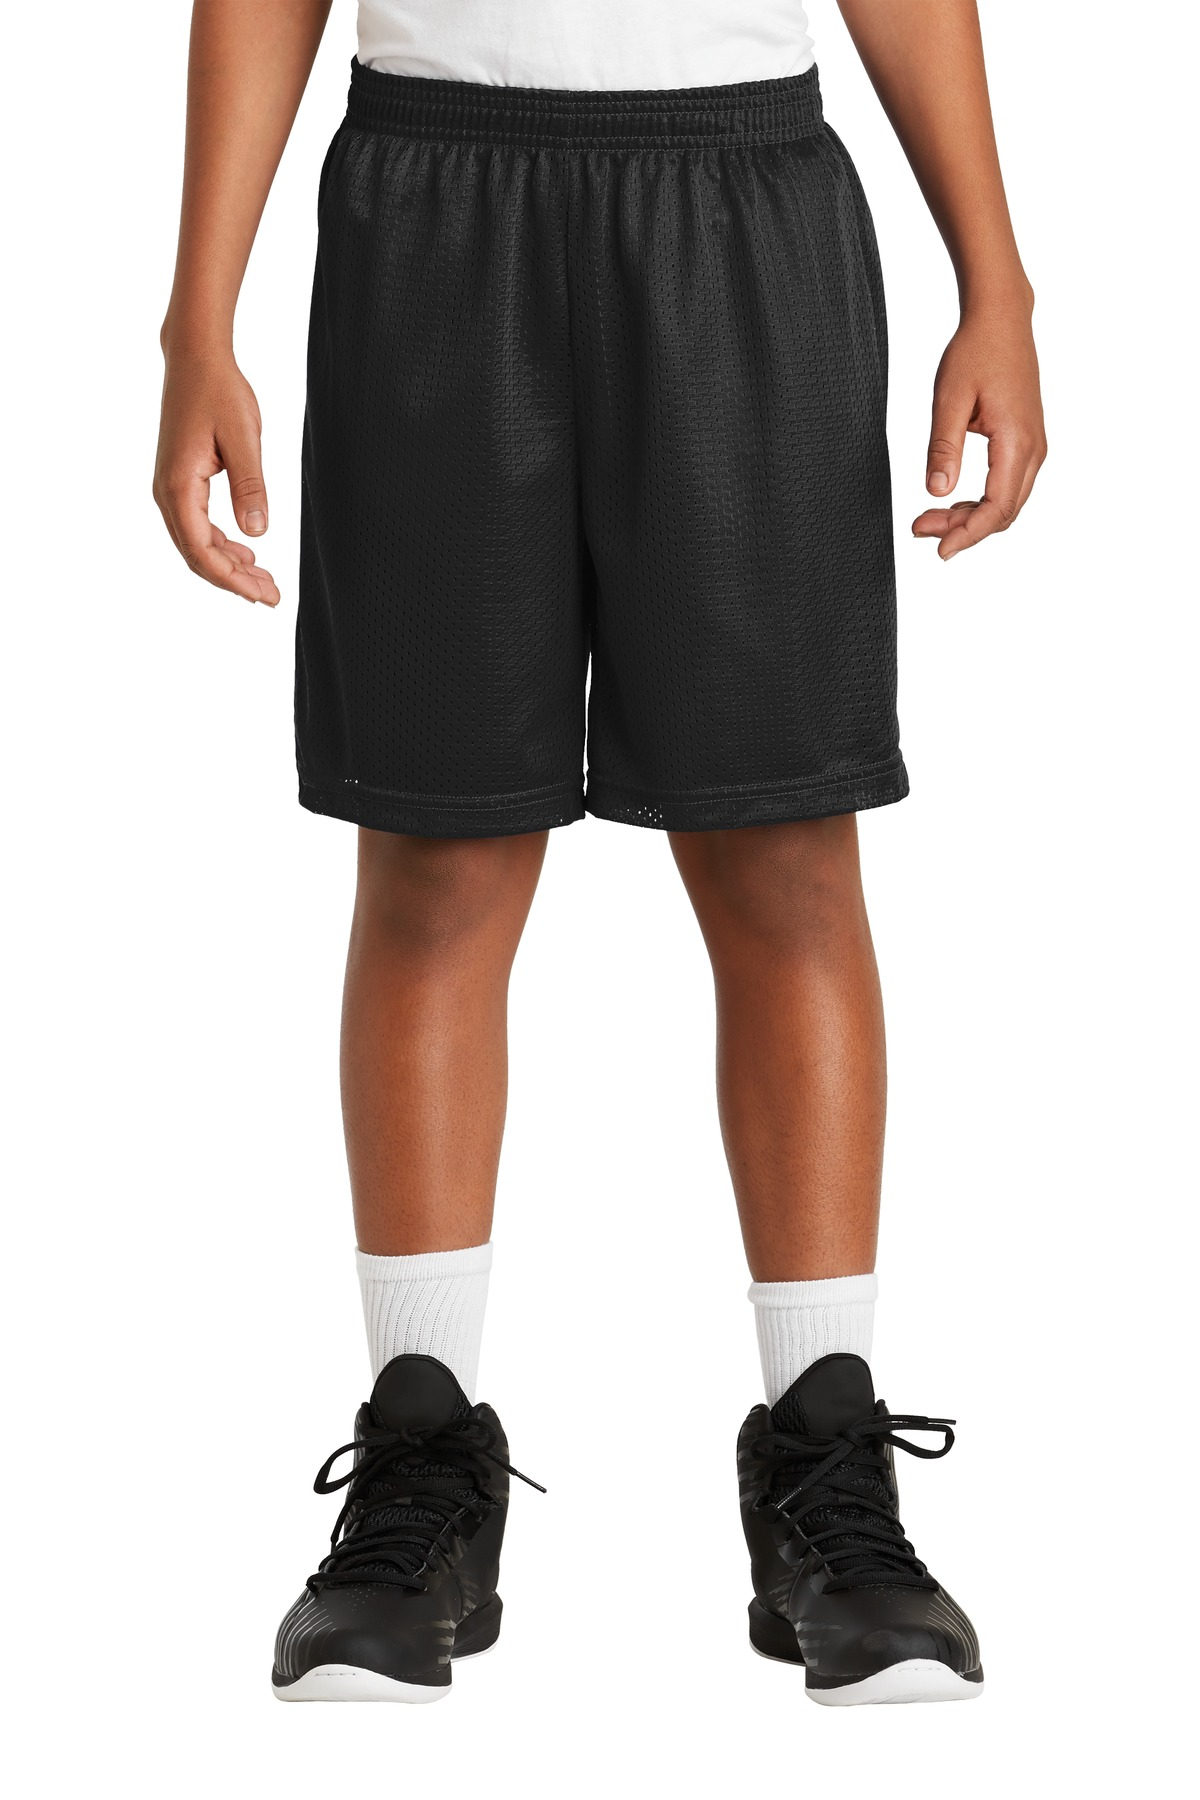 Sport-Tek ®  Youth PosiCharge ®  Classic Mesh Short. YST510 - Black